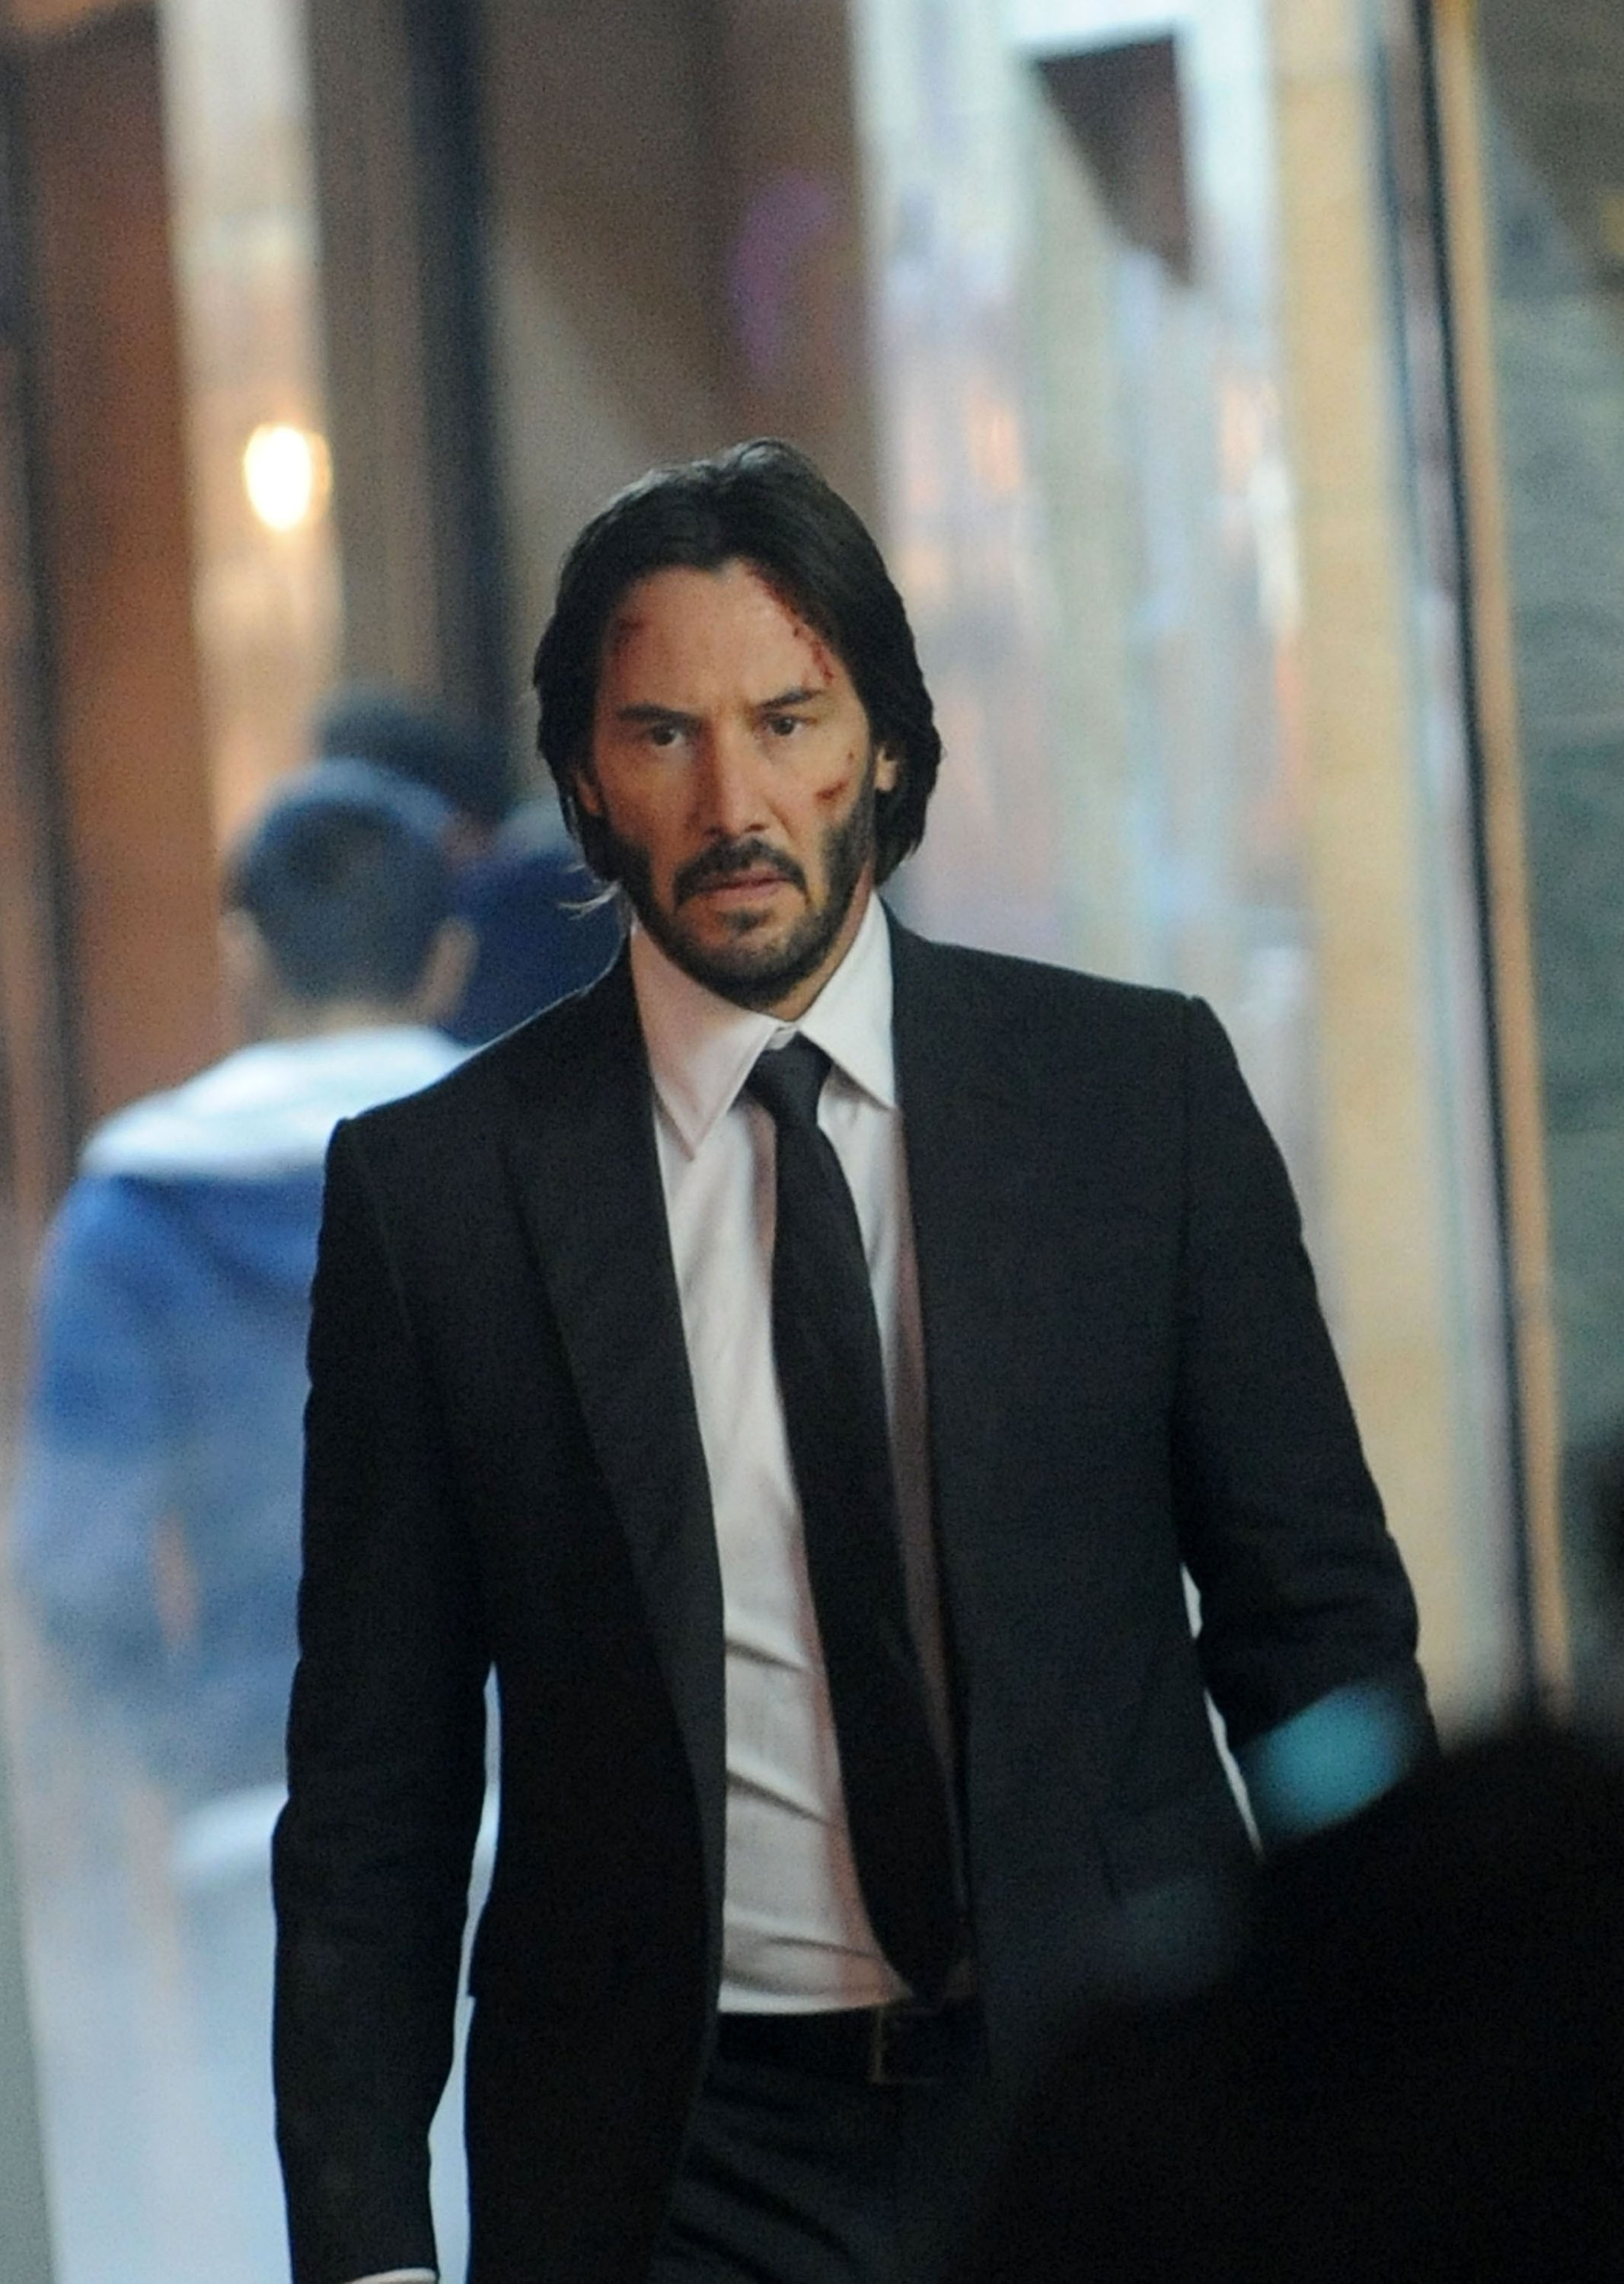 Actor Keanu Reeves walks on the set of 'John Wick Chapter 2' in New York City, U.S., Nov. 16, 2015. (Getty Images)